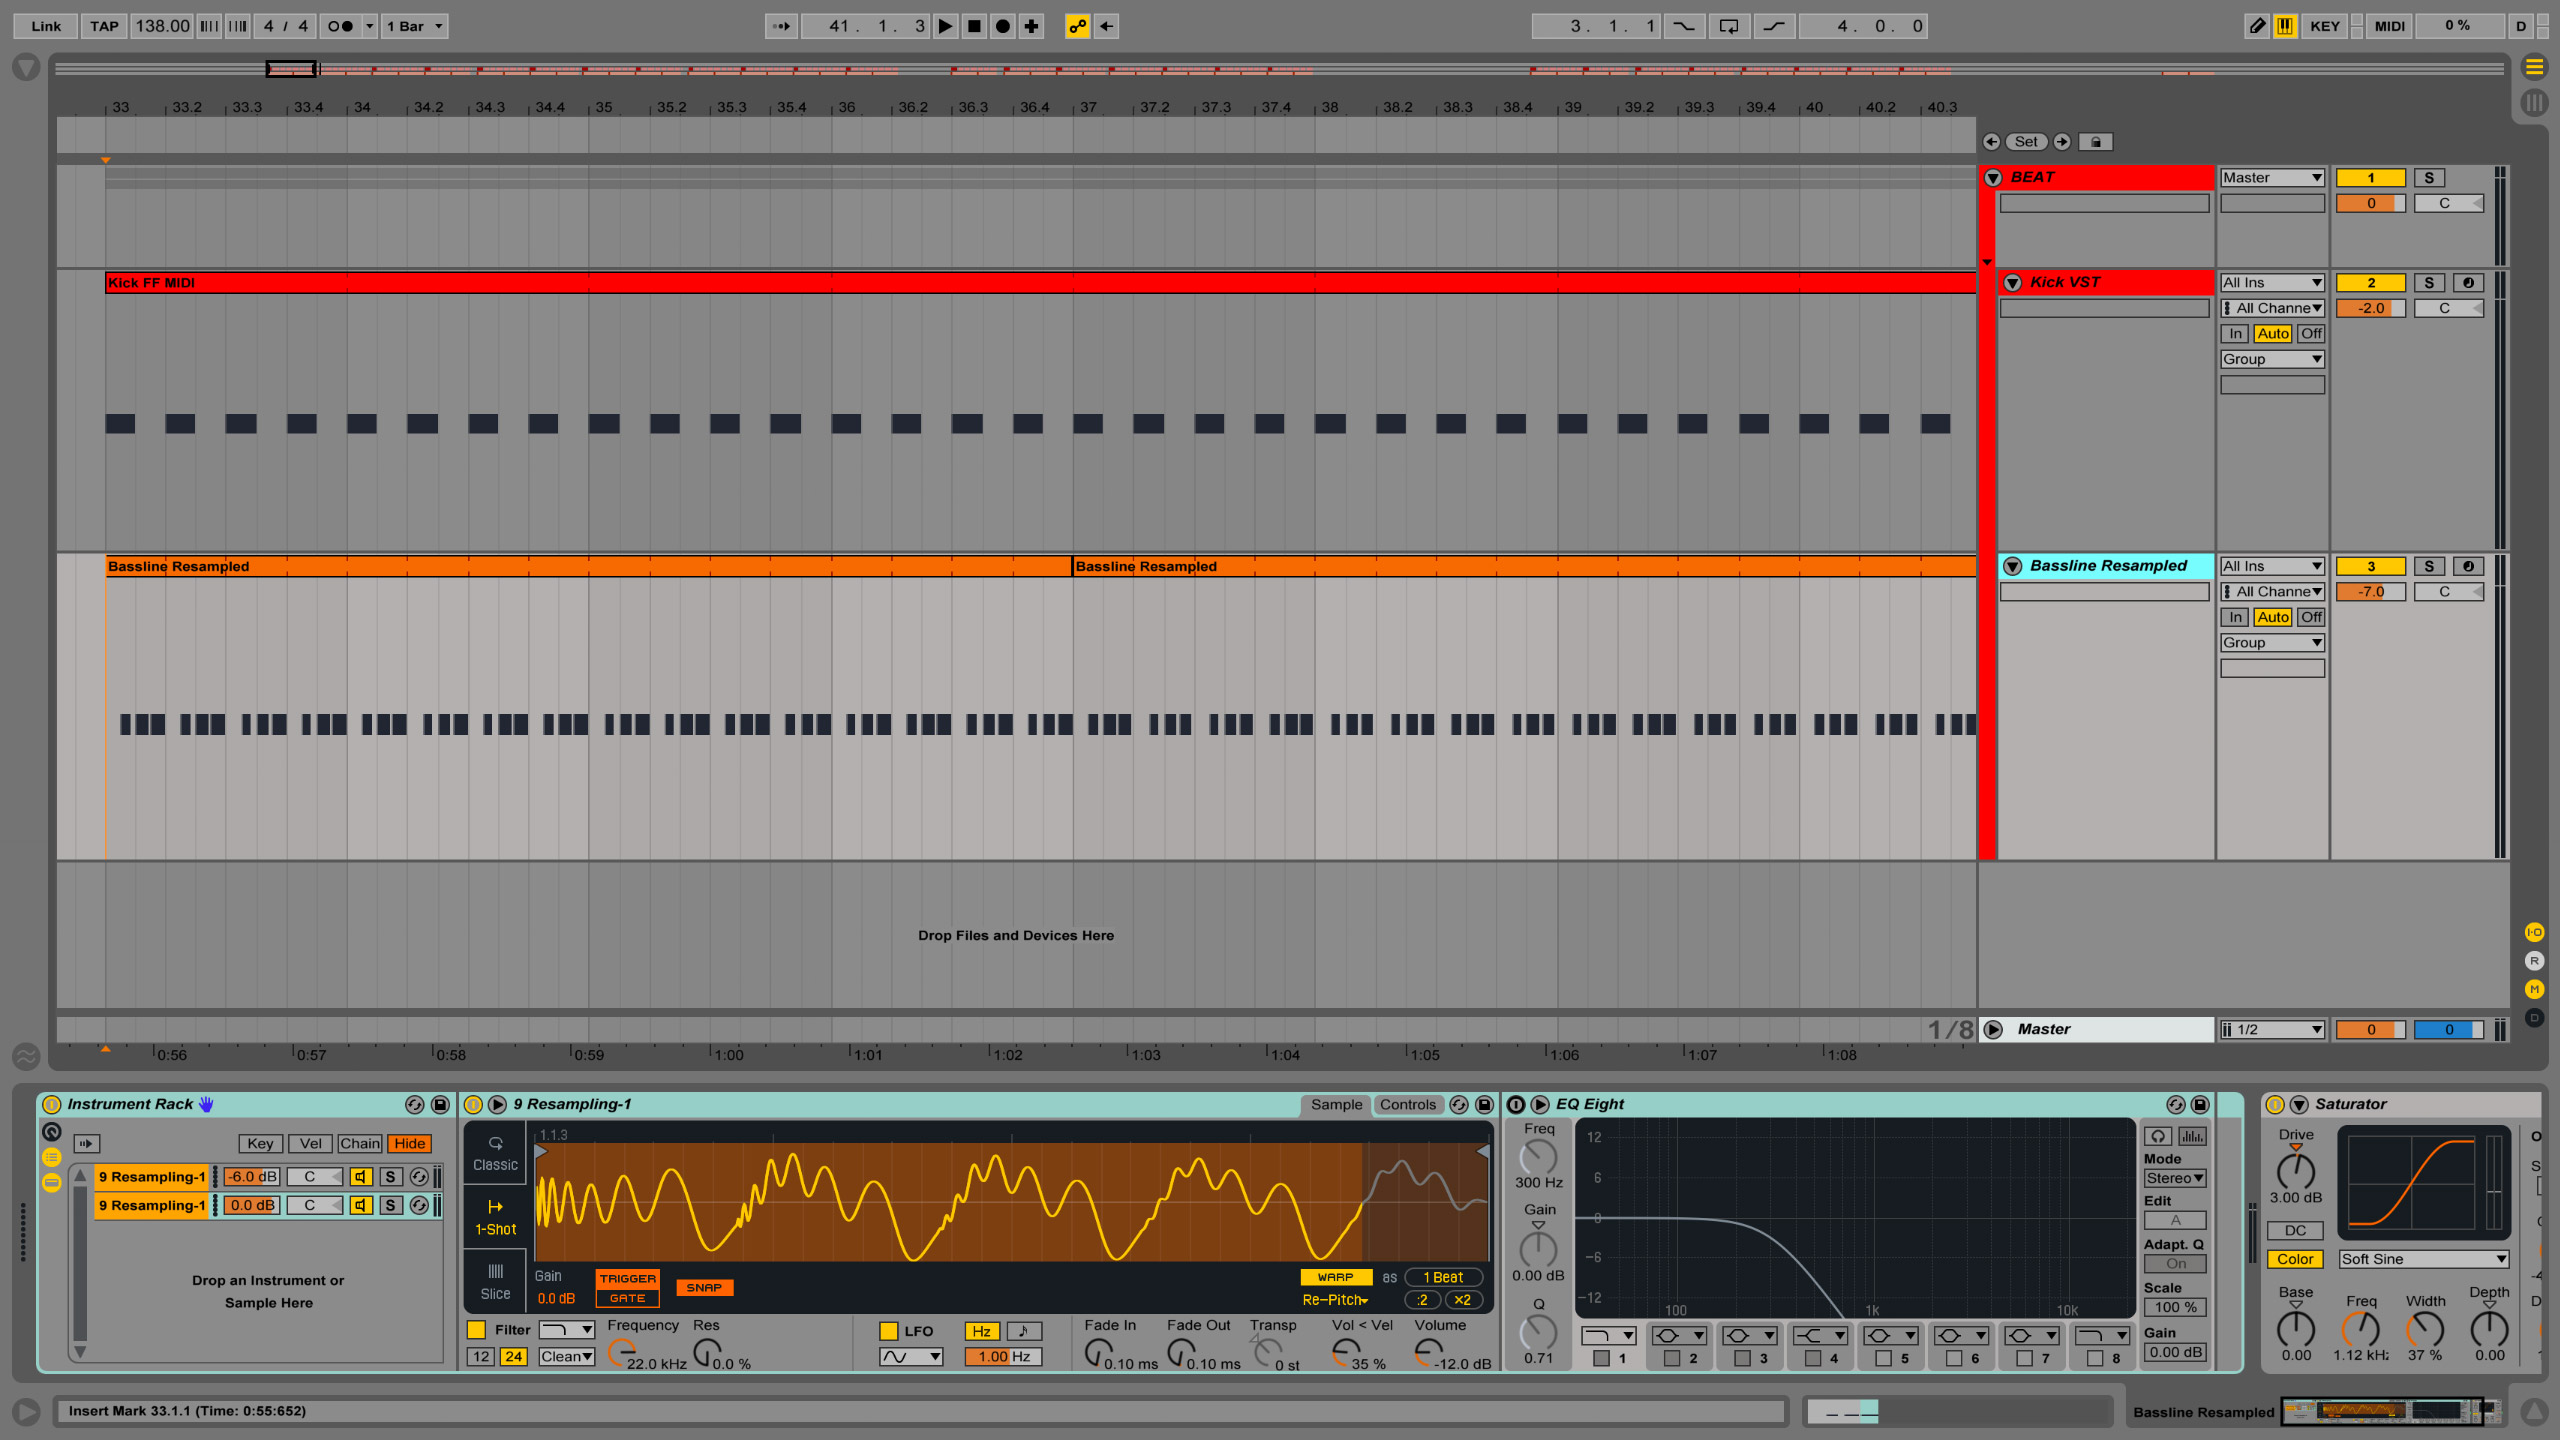 How to fit kick and bass together